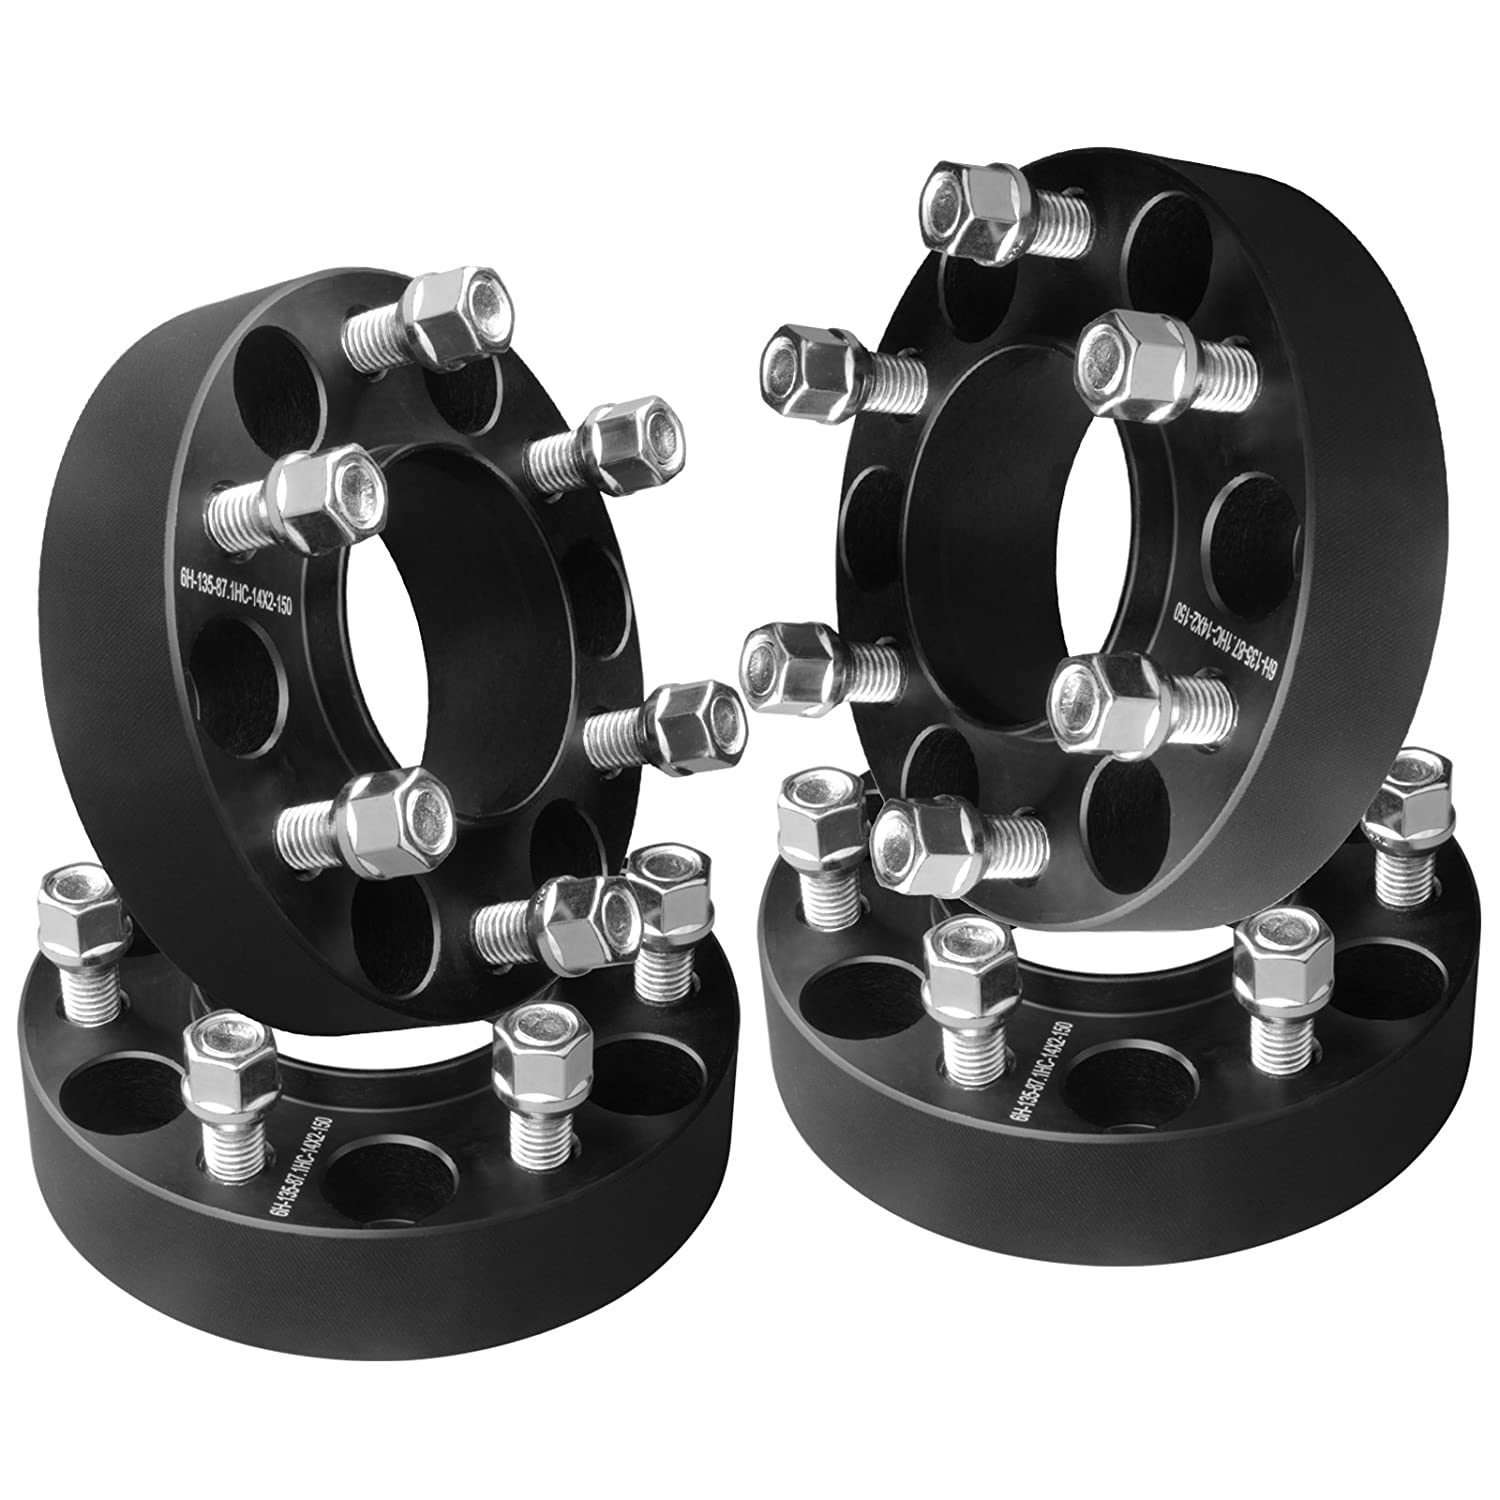 2003-2014 Navigator 2003-2014 Expedition GDSMOTU 4pc Hubcentric 1.5 Wheel Spacers 6x135 with 14x2.0 Studs for 2004-2014 Ford F150 2006-2014 Lincoln Mark LT